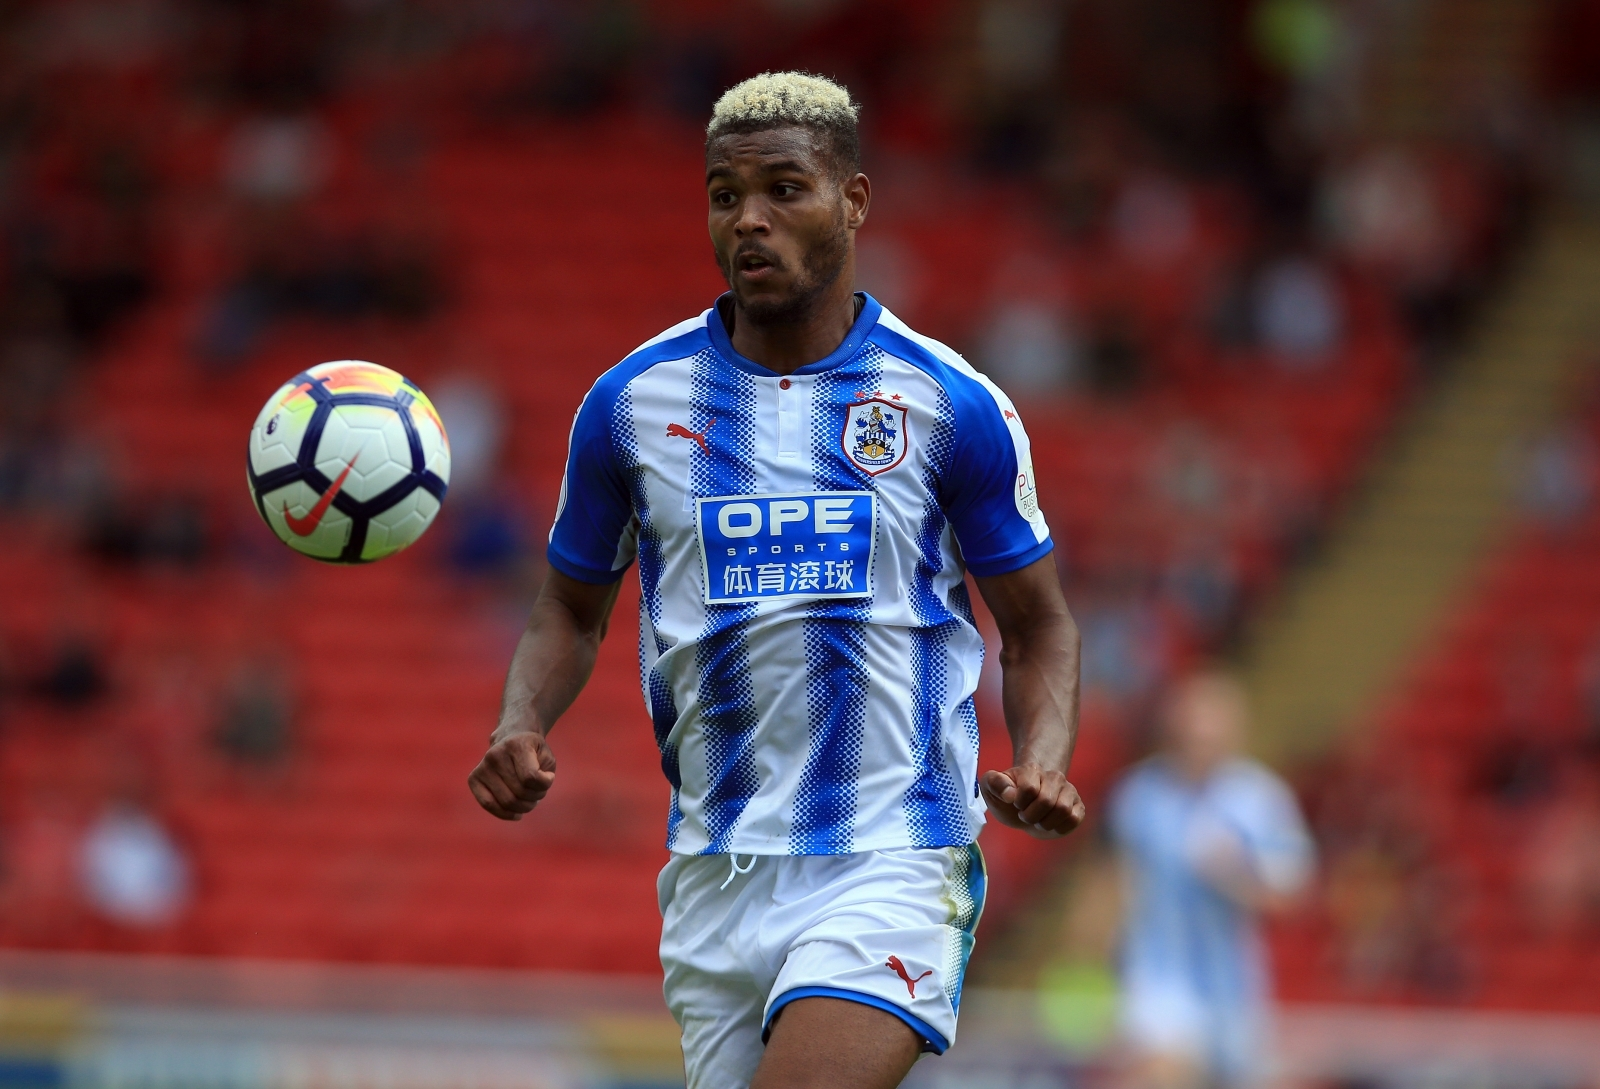 New boys Huddersfield put three past De Boer's Palace